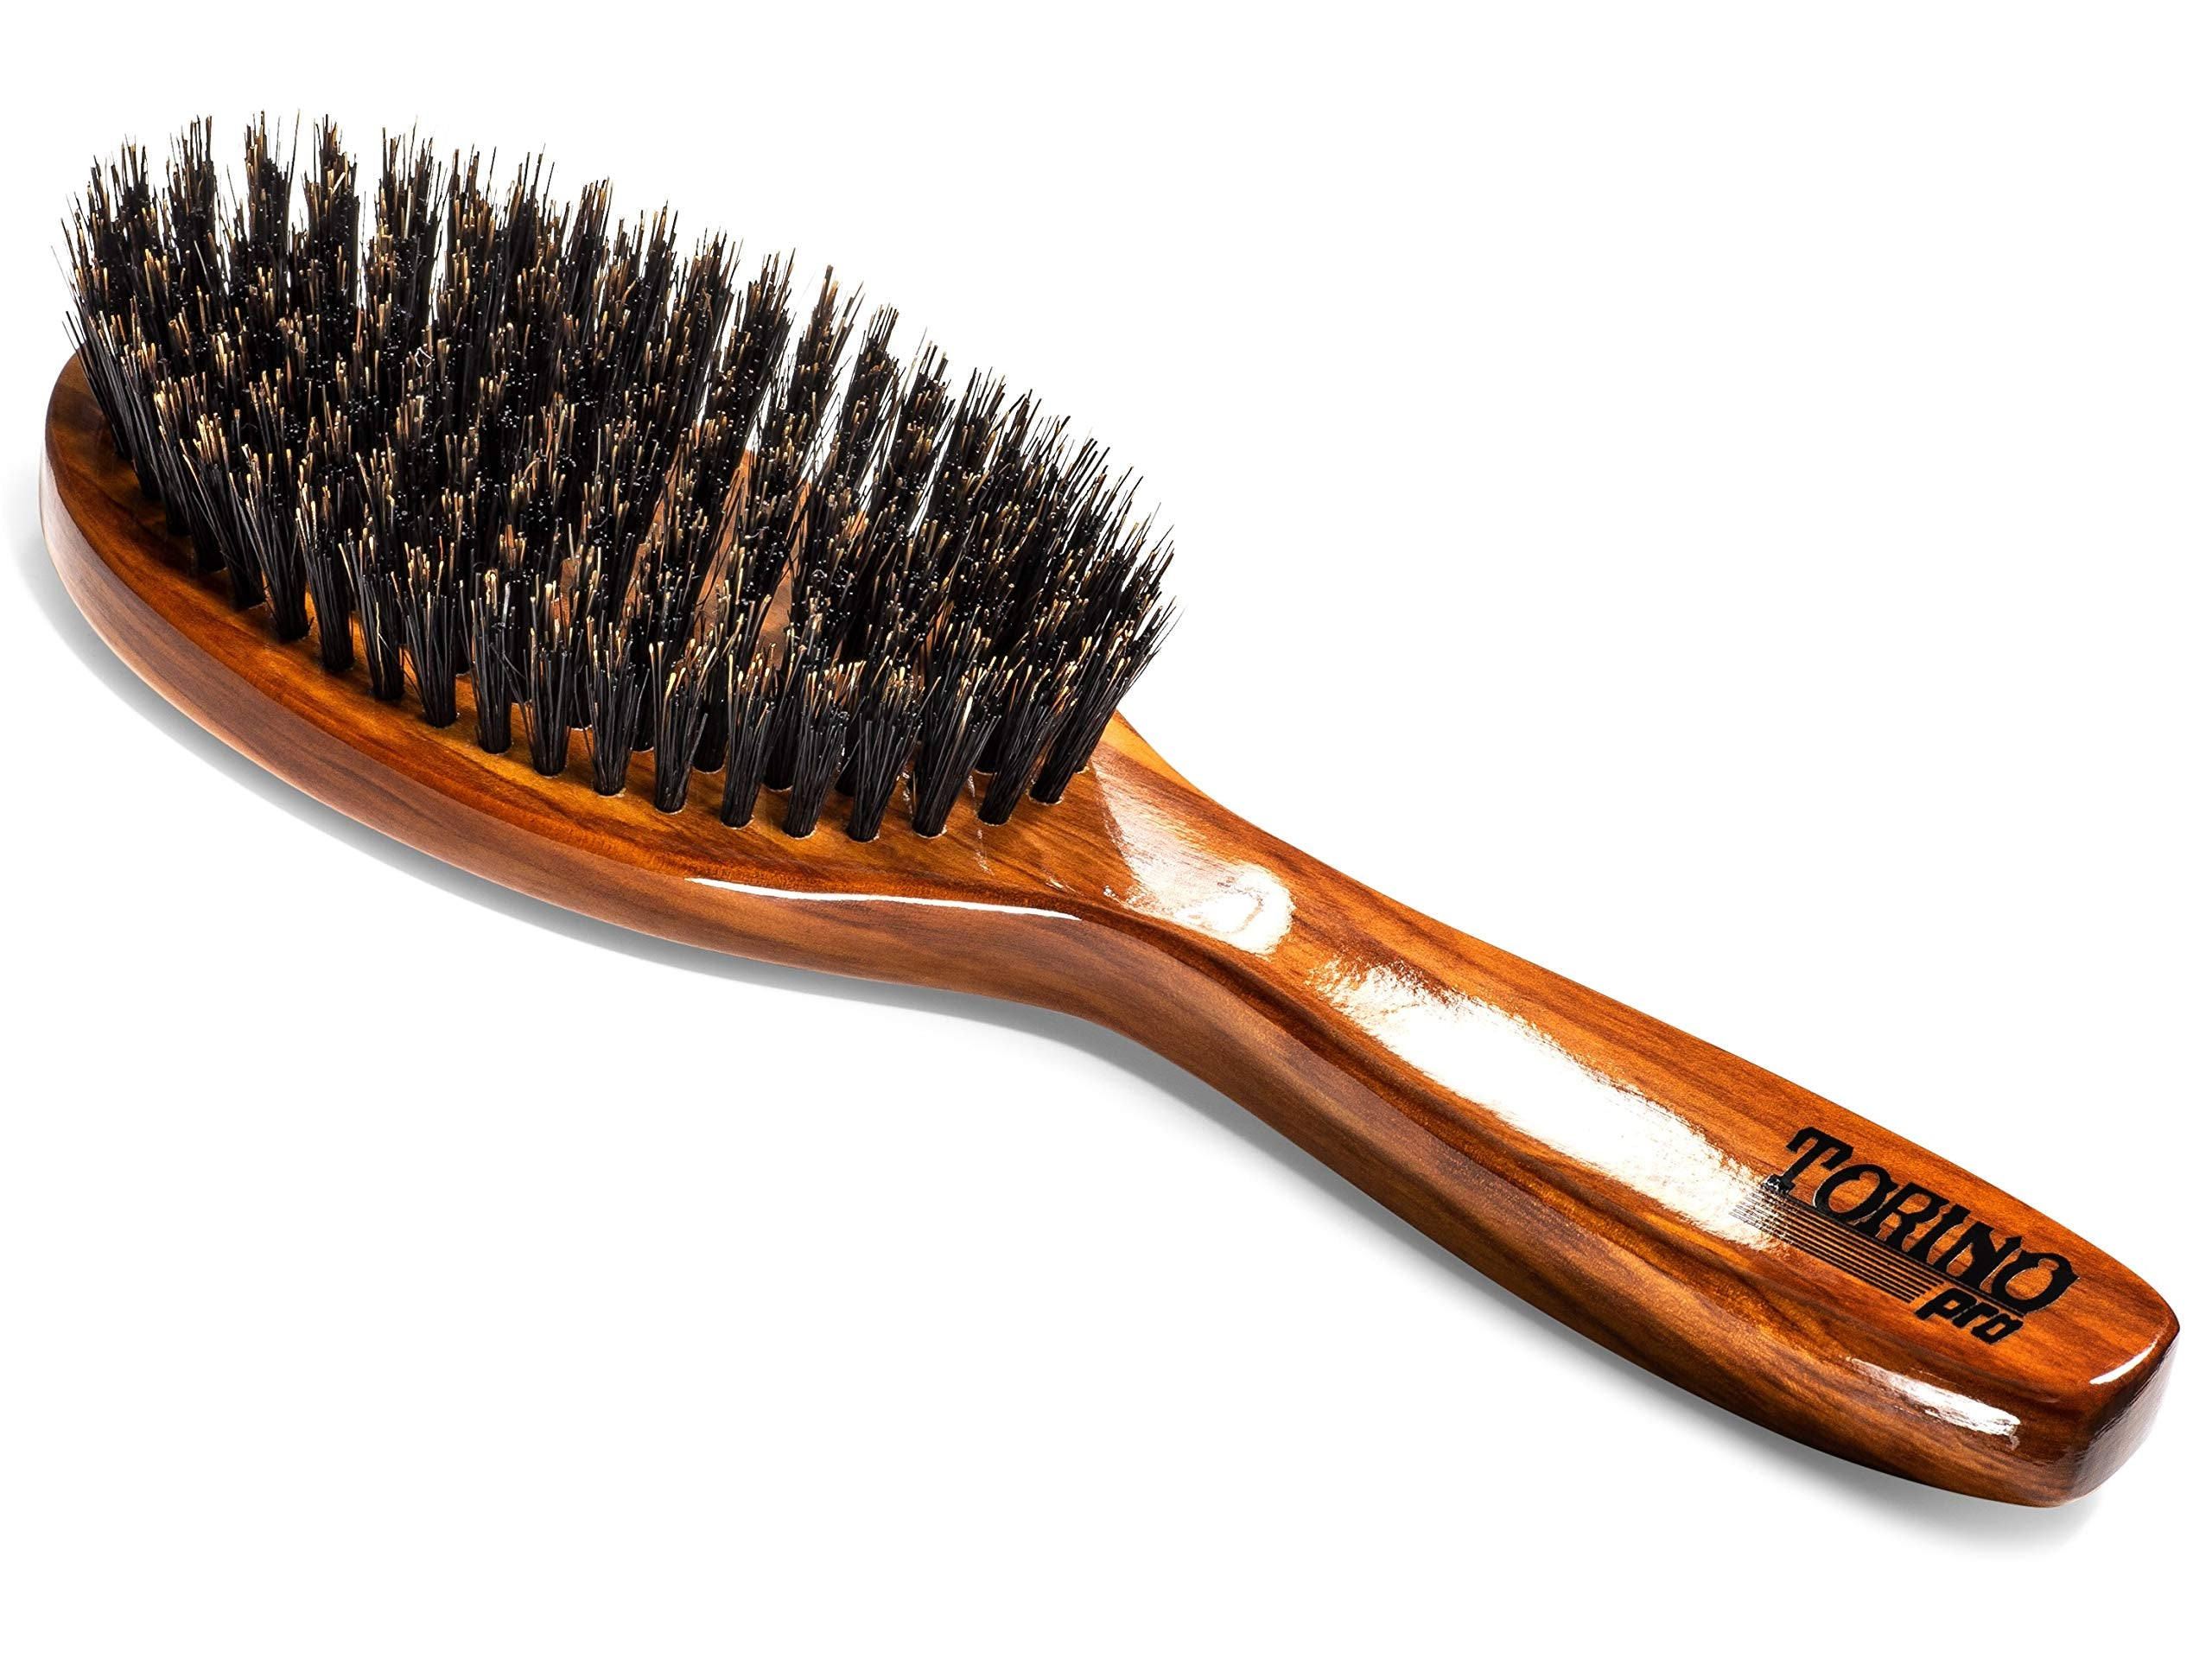 Torino Pro Wave Brush #1170 - By Brush King - Medium Oval Palm/Military  with